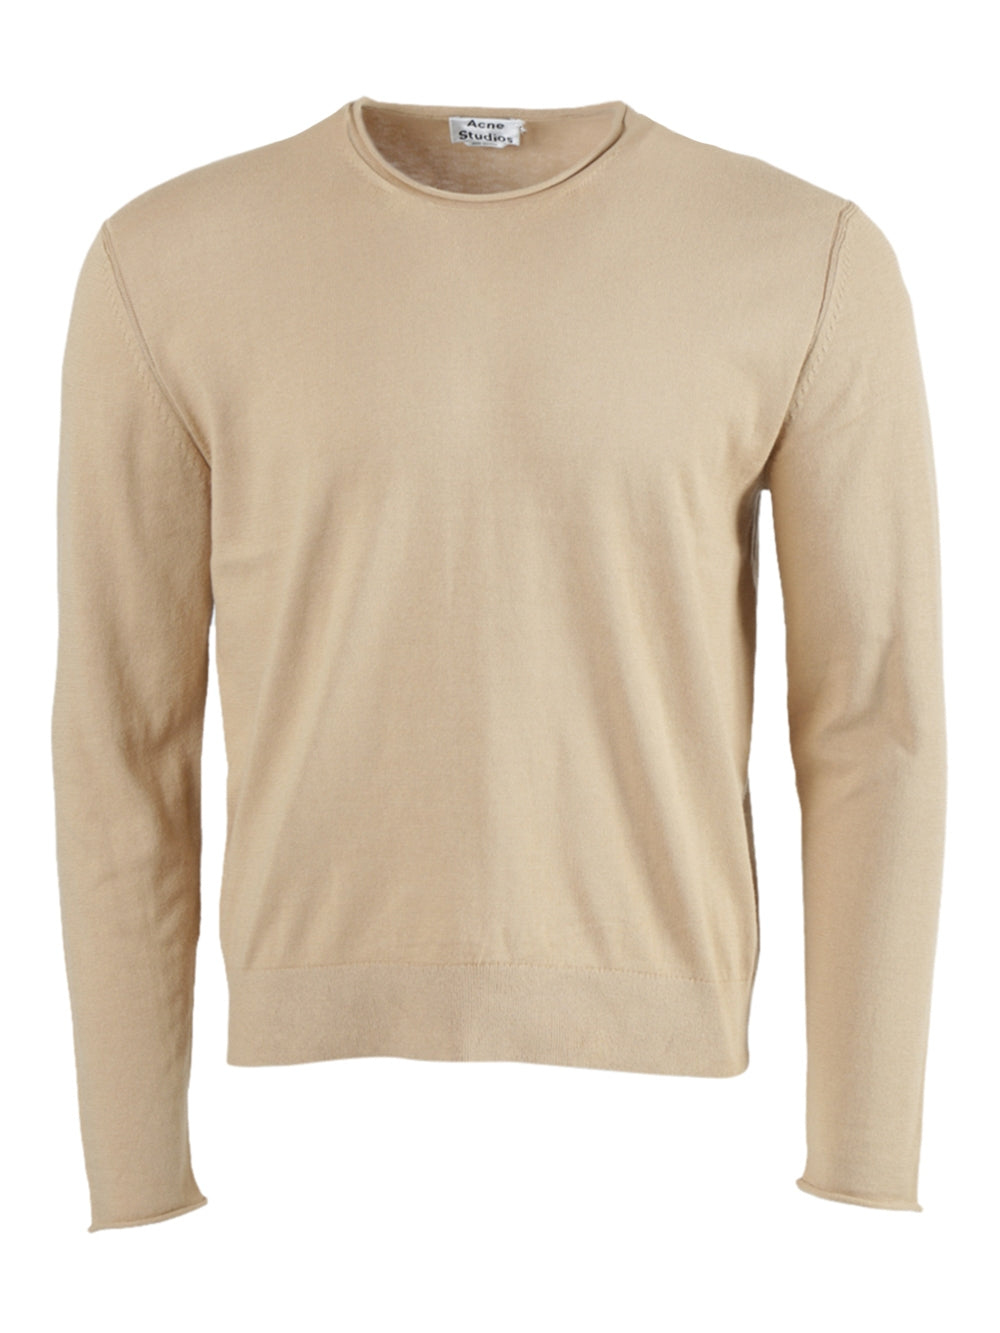 Beige Crewneck Knit Sweater